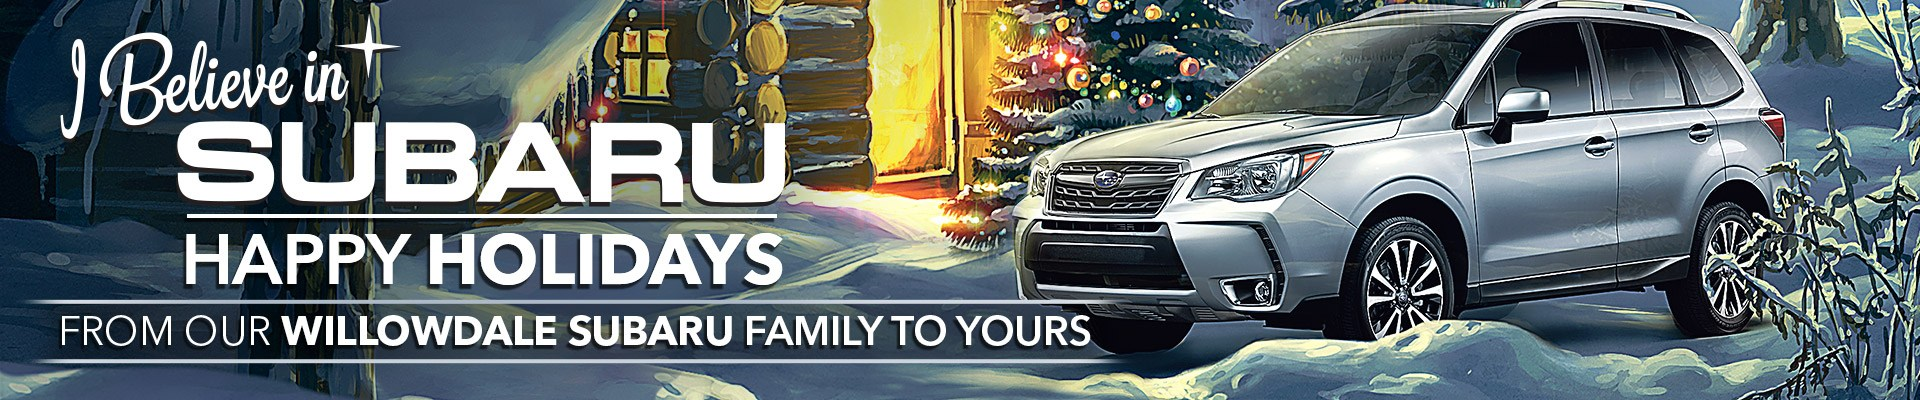 Happy Holidays from Willowdale Subaru